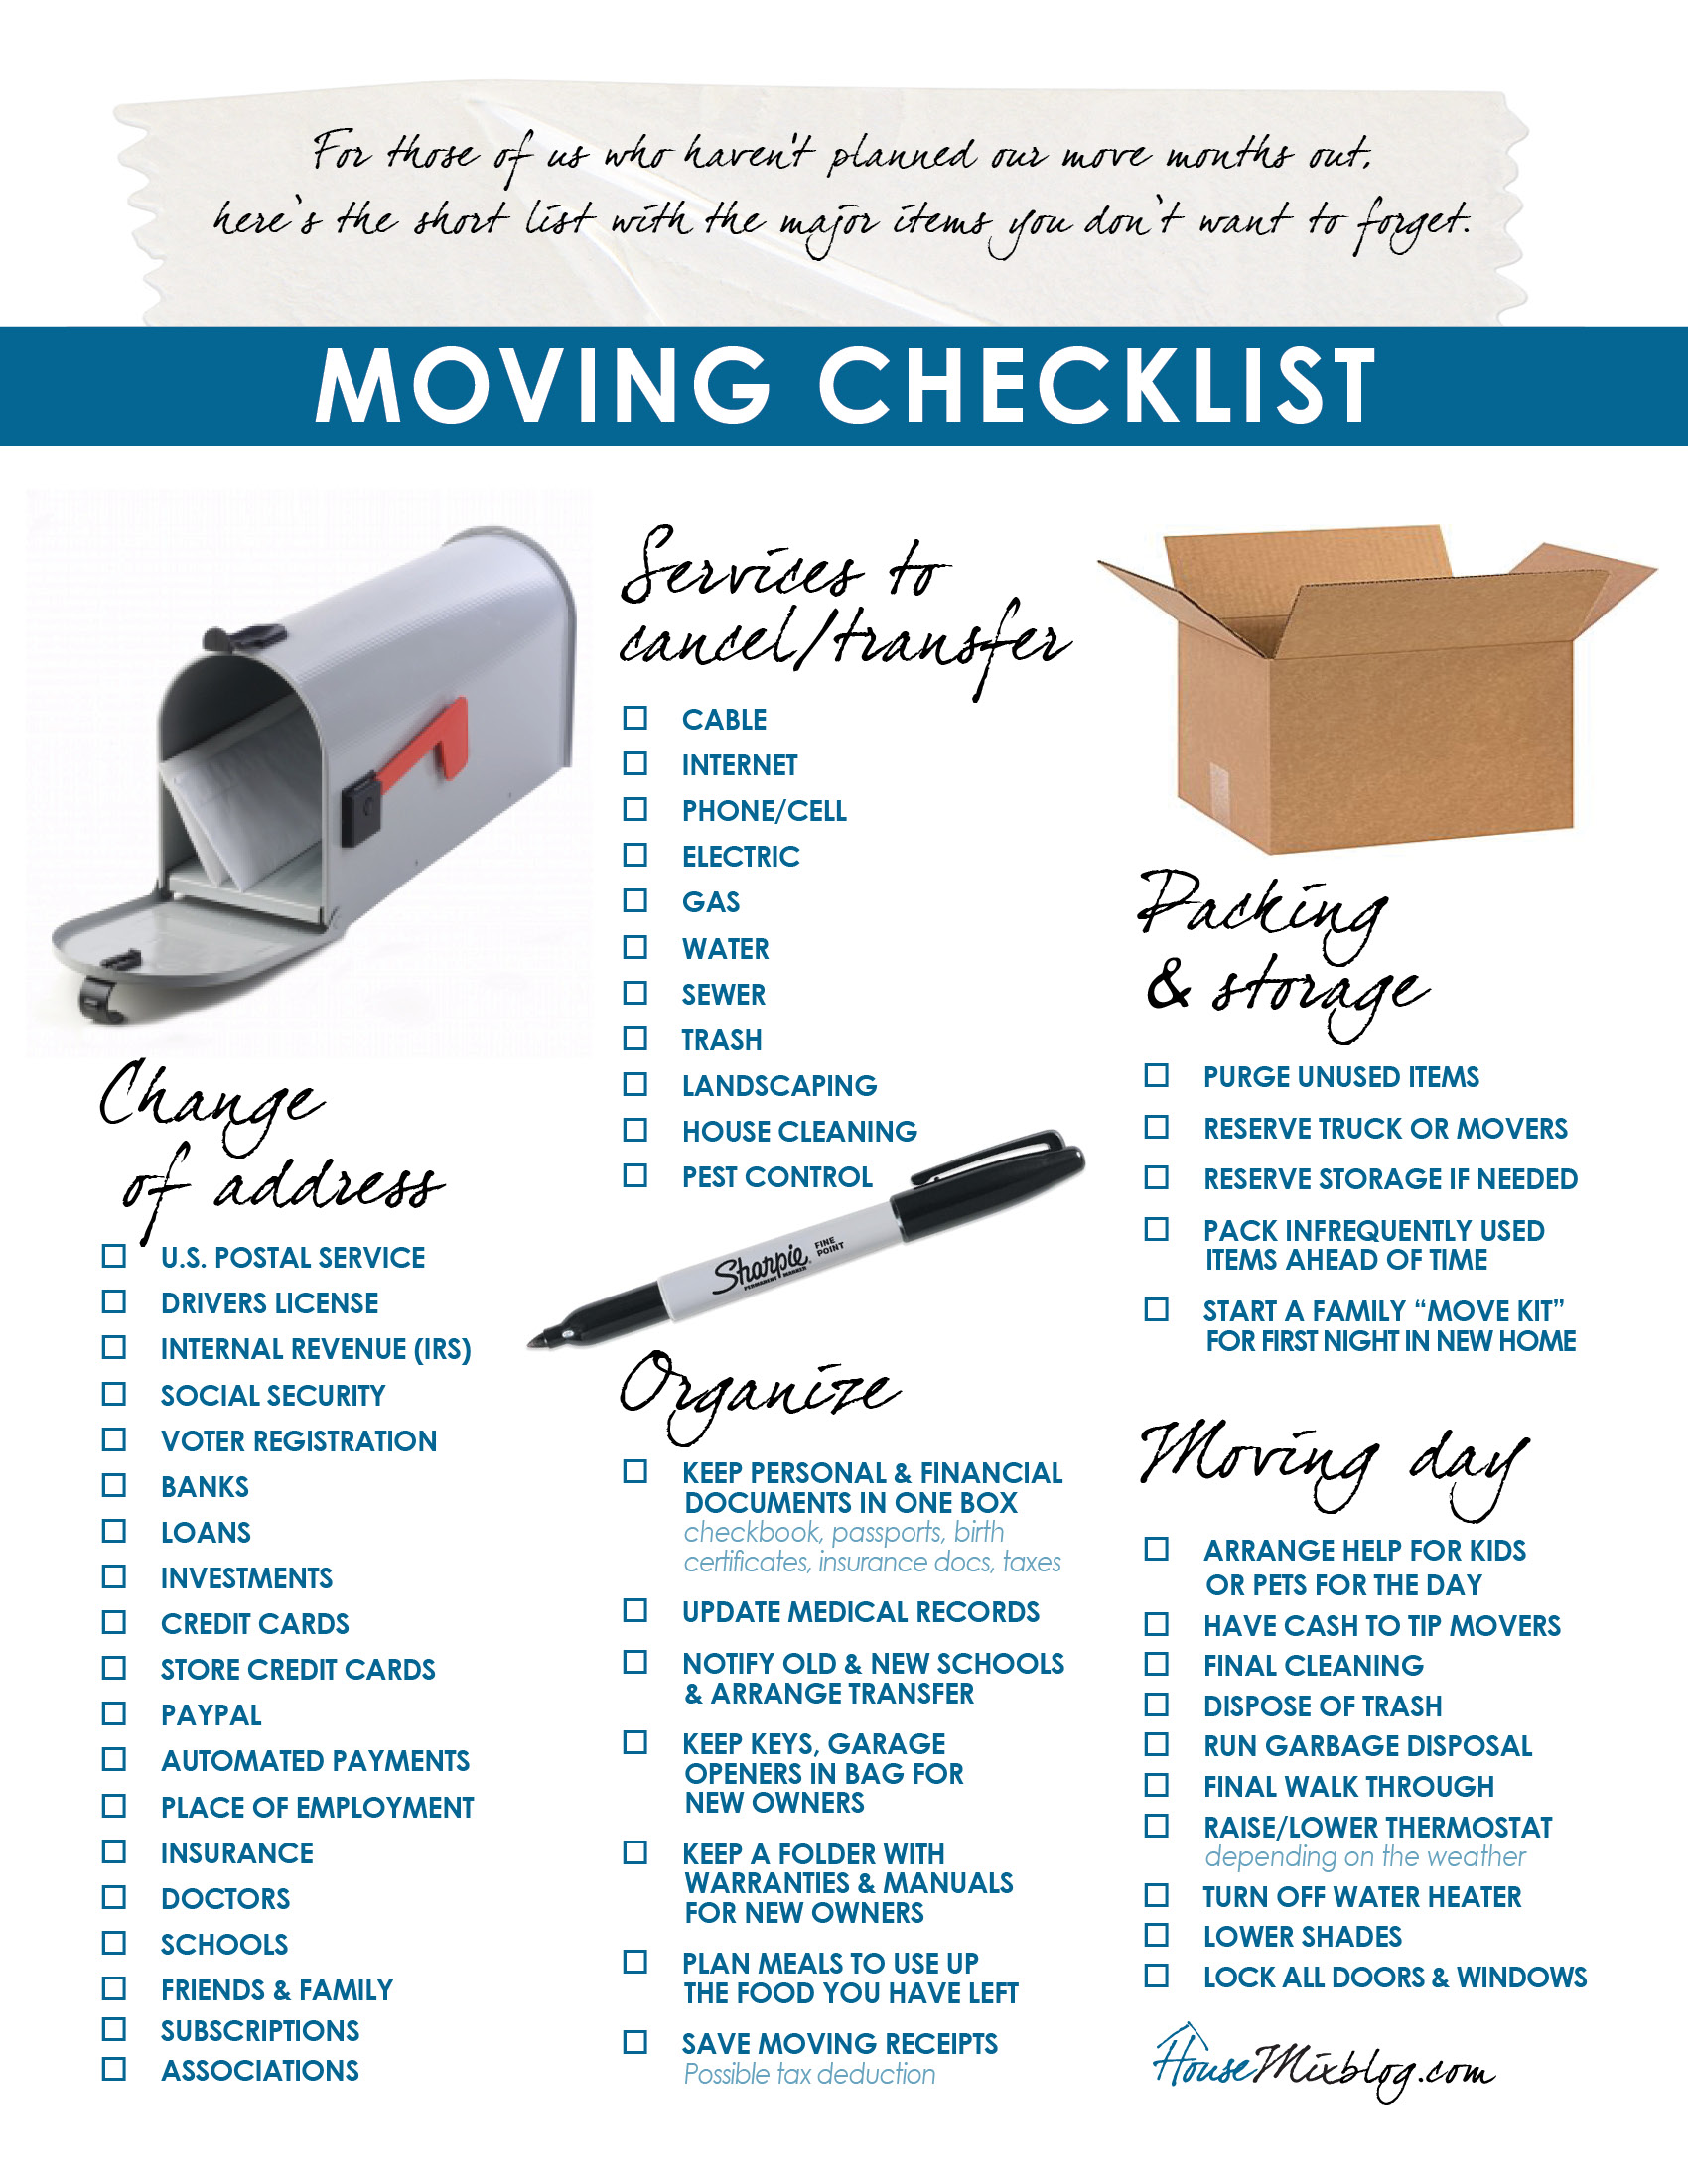 Moving Day Tips - Moving Day Checklist for your New Home